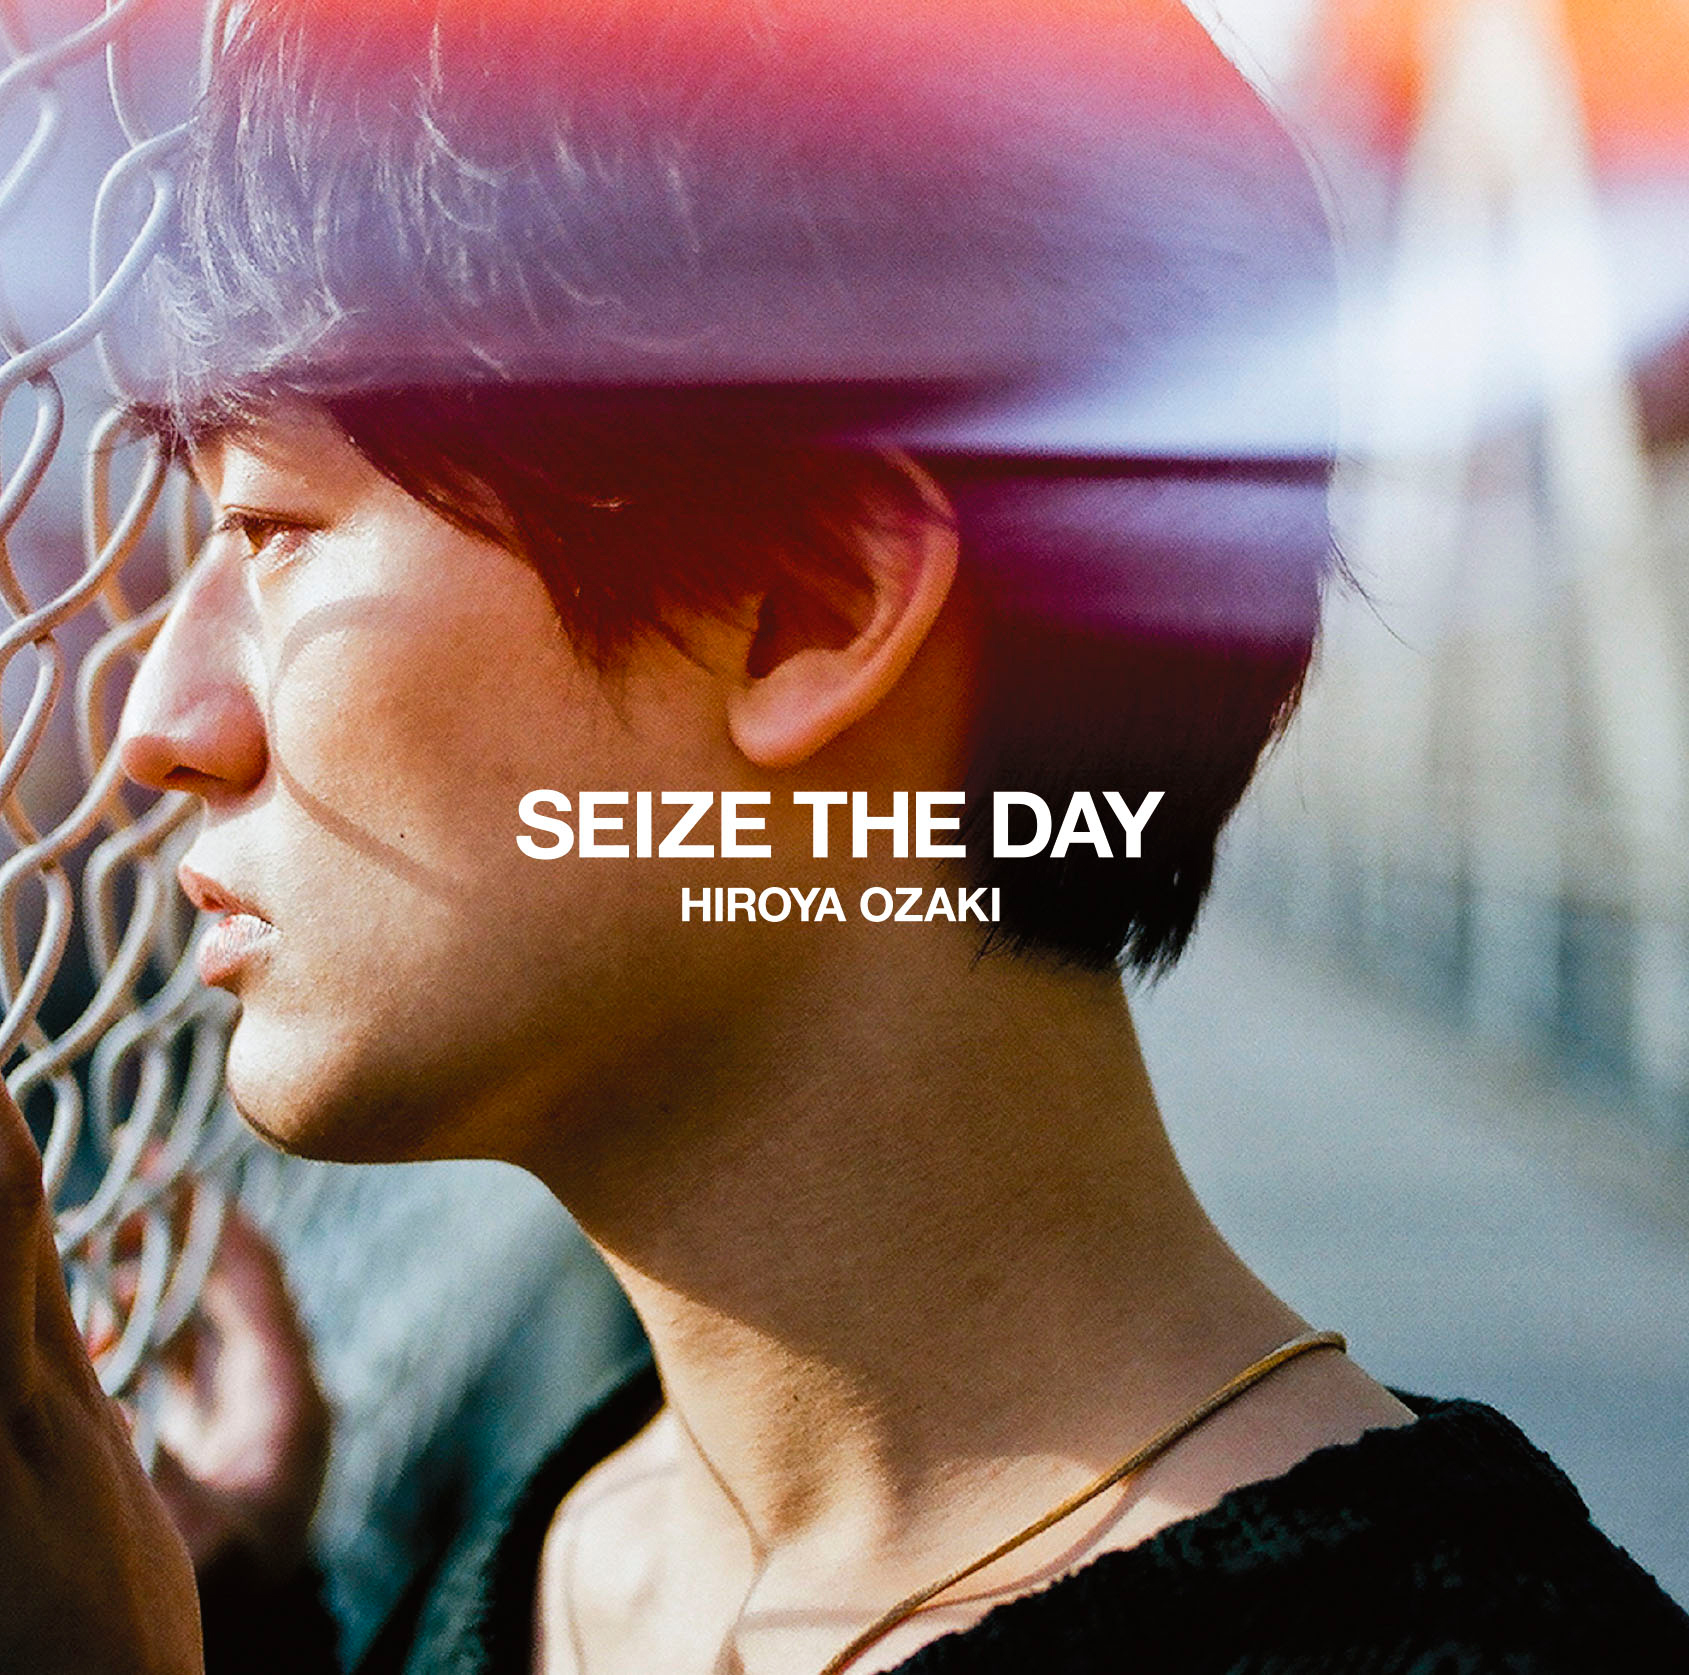 「SEIZE THE DAY」通常盤